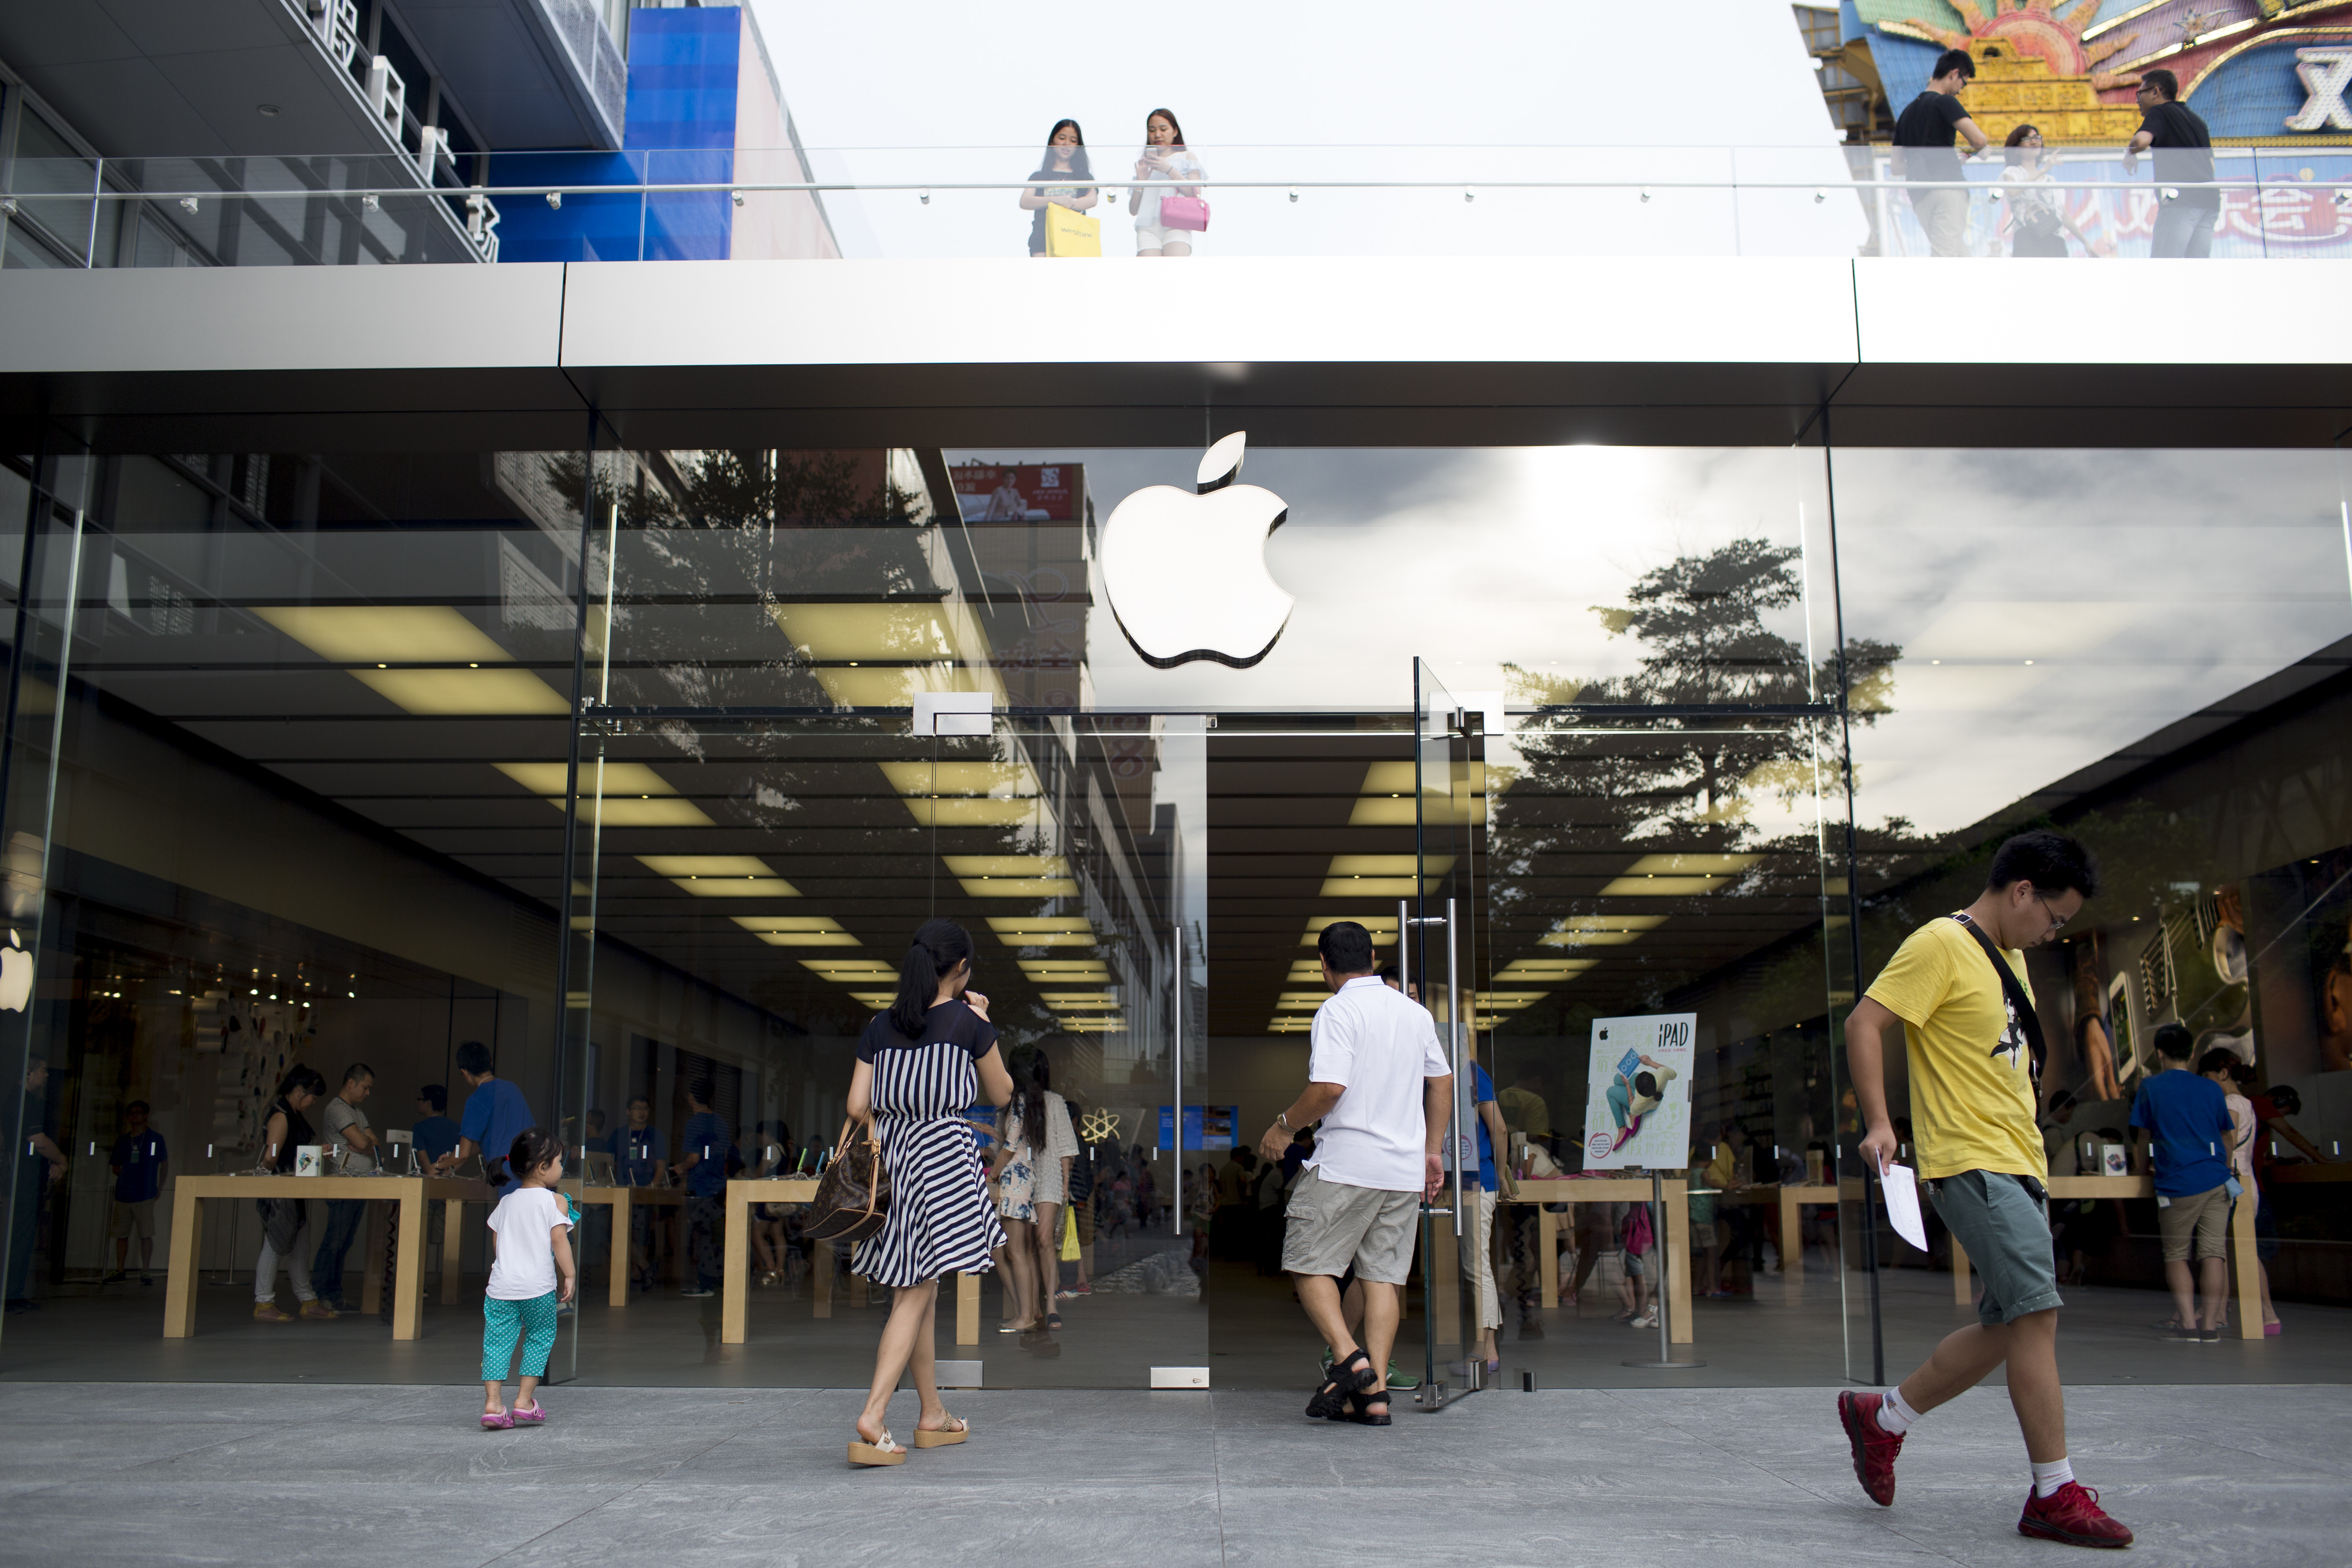 U.S. watchdogs accuse Chinese Apple supplier of unsafe work conditions